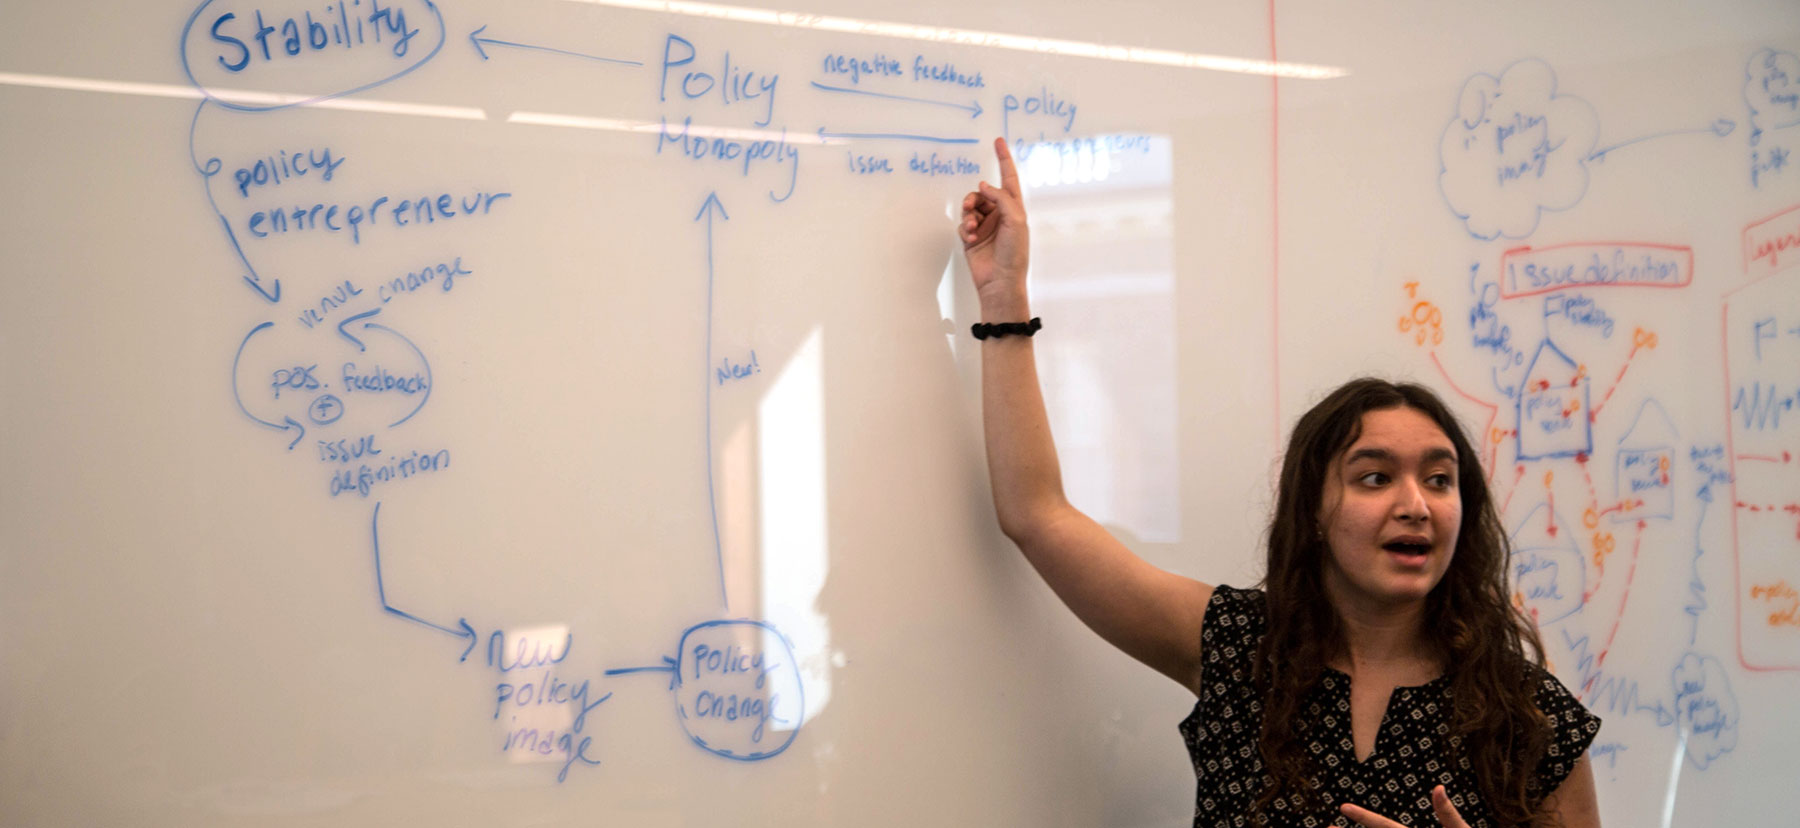 Lilian Feist stands in front of a whiteboard covered with writing while explaining her diagram